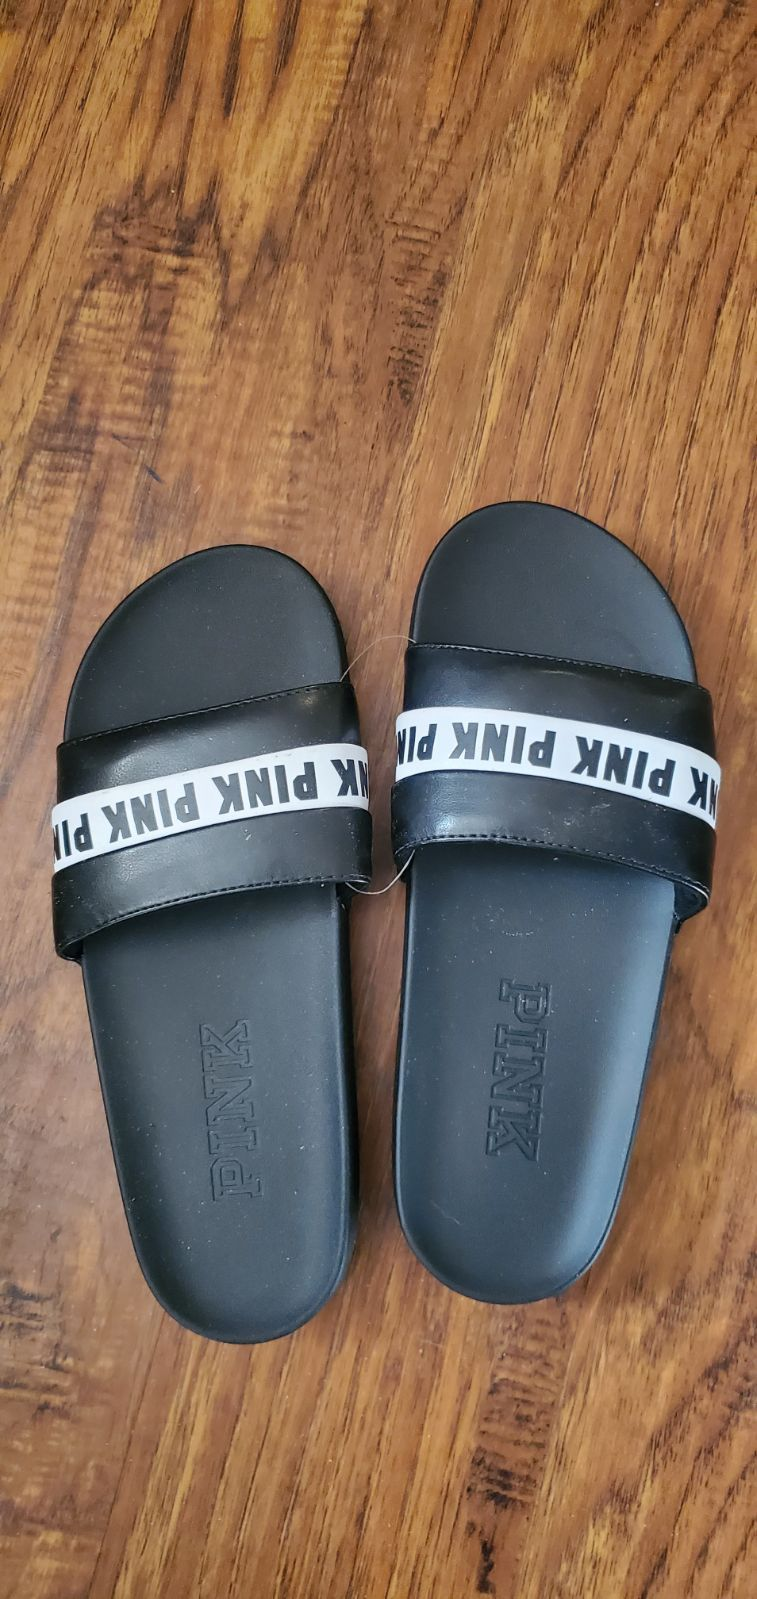 New With Tags Pink Slides Color Black And White Stripes Size Large Material Faux Leather Strap Rubber Sole Pink Slides Pink Sandals Large Black